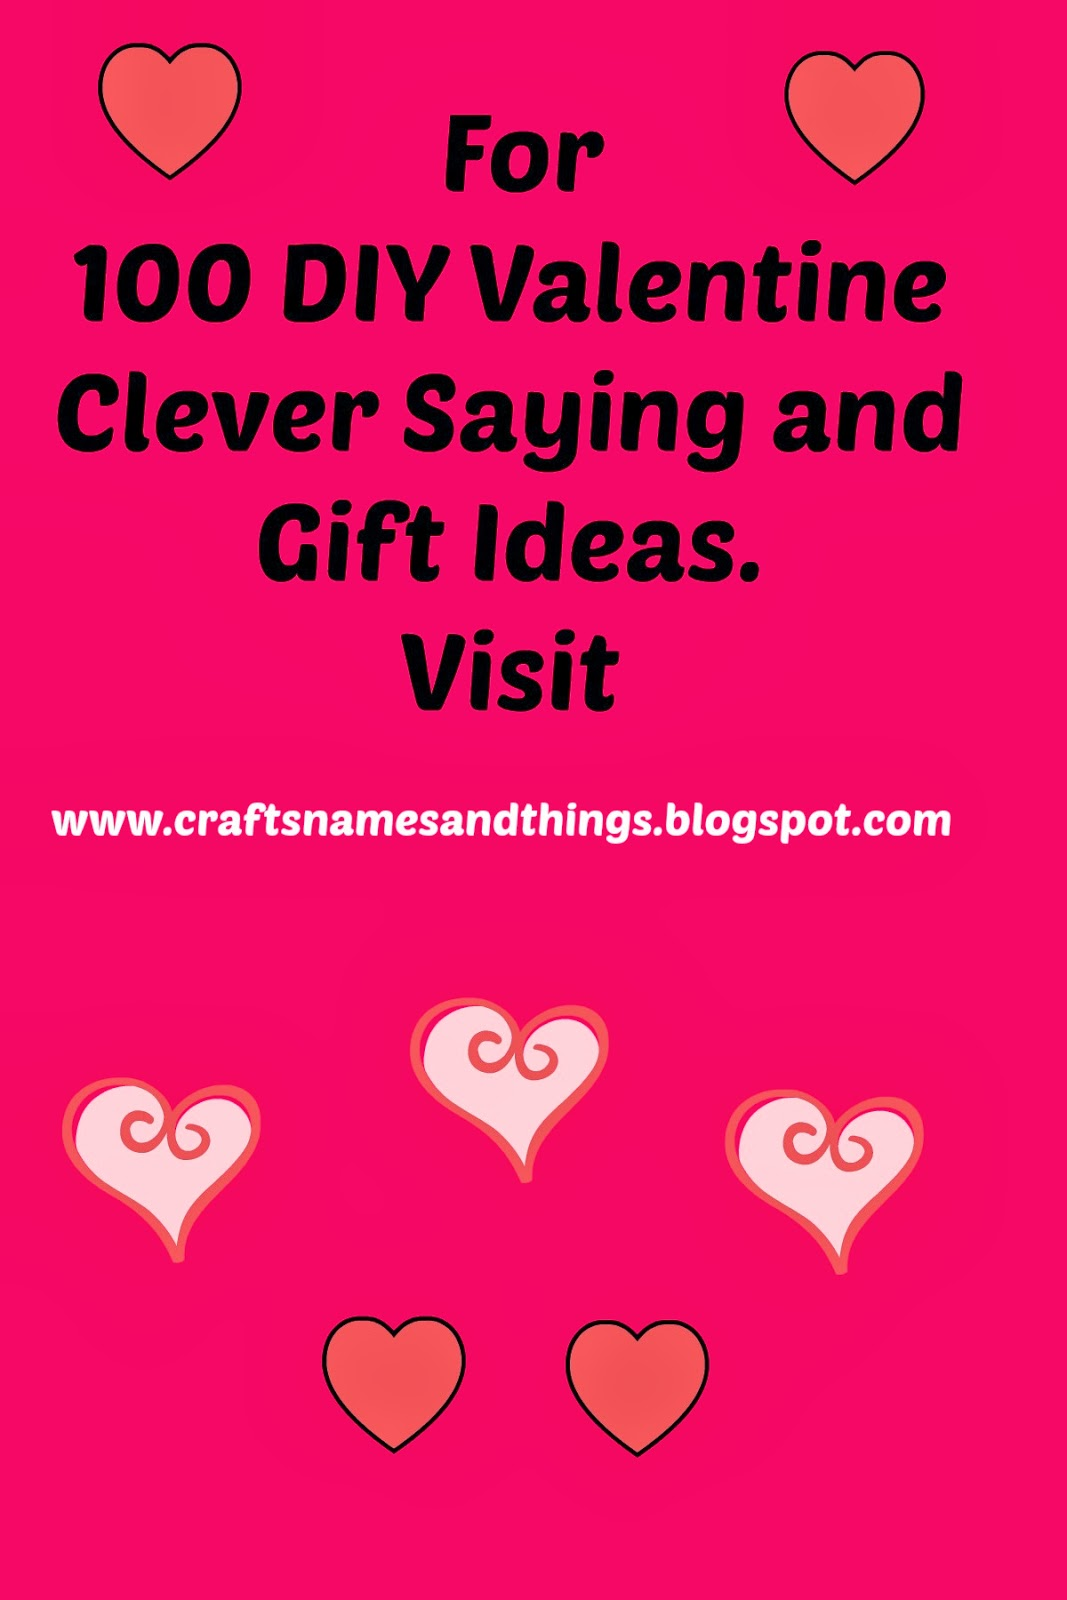 Cheesy Valentines Day Quotes For Him : Crafts Names And Things Diy Valentine  Ideas